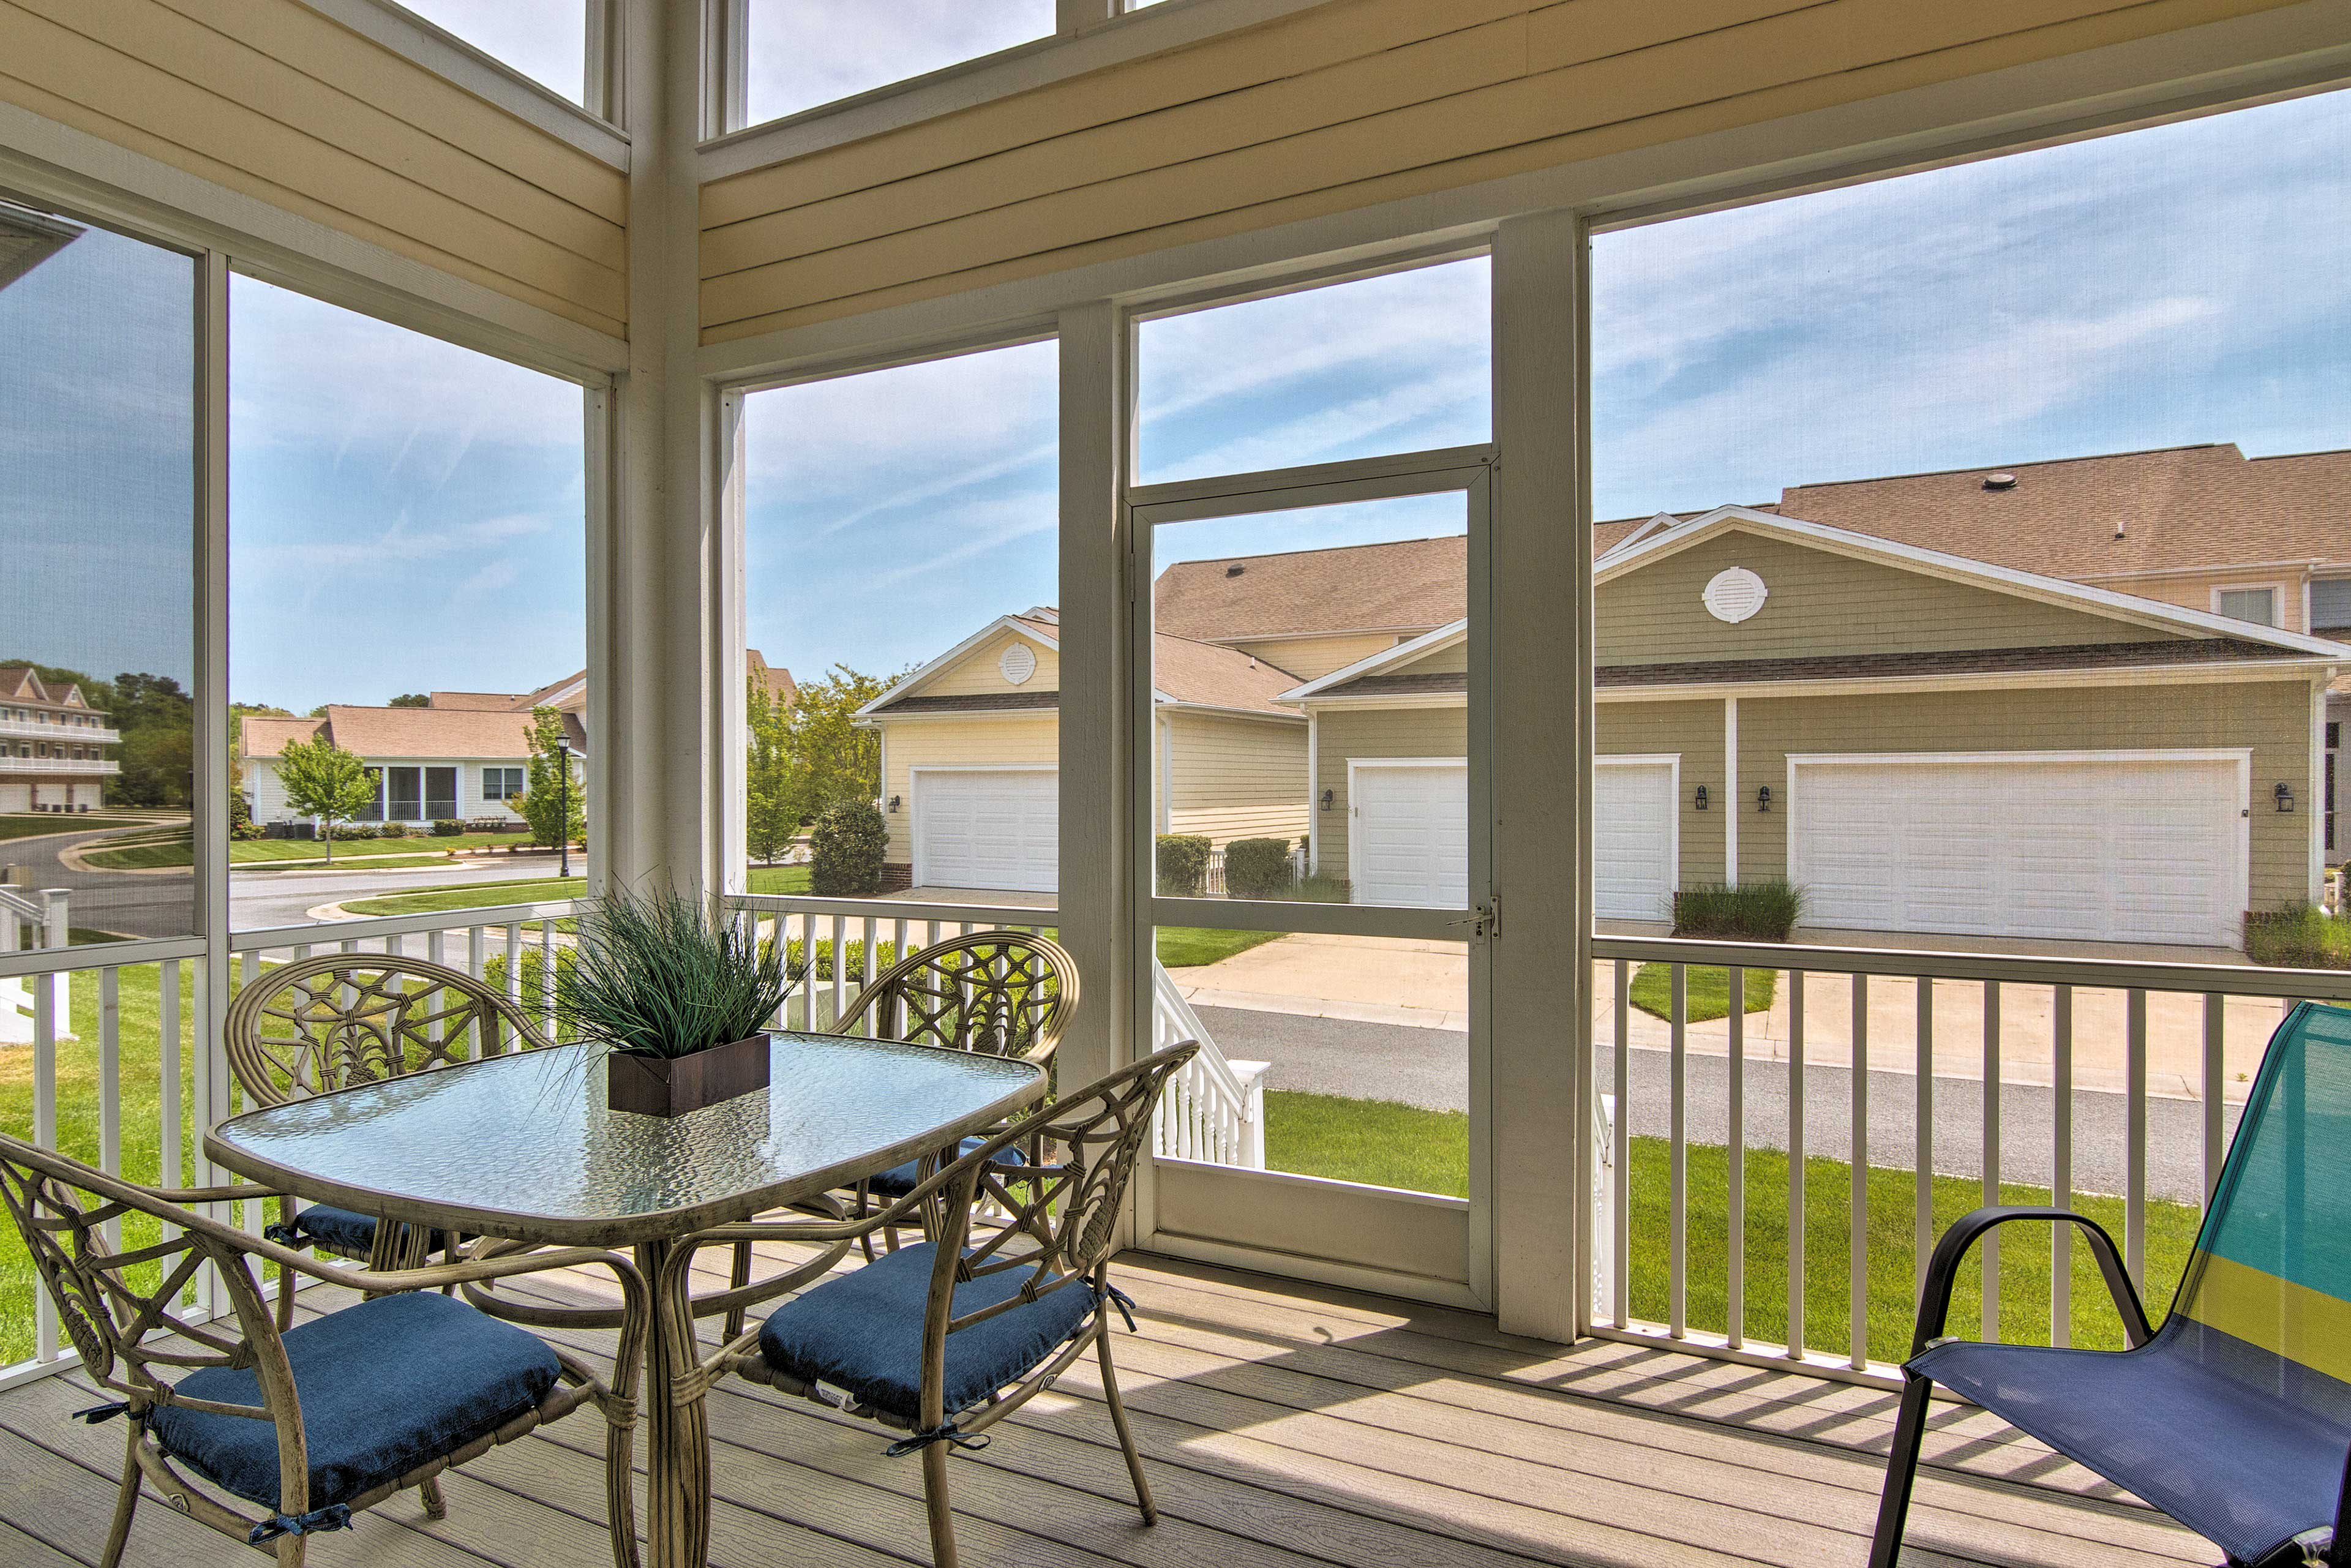 The screened-in porch is ideal for sipping coffee in your serene setting.